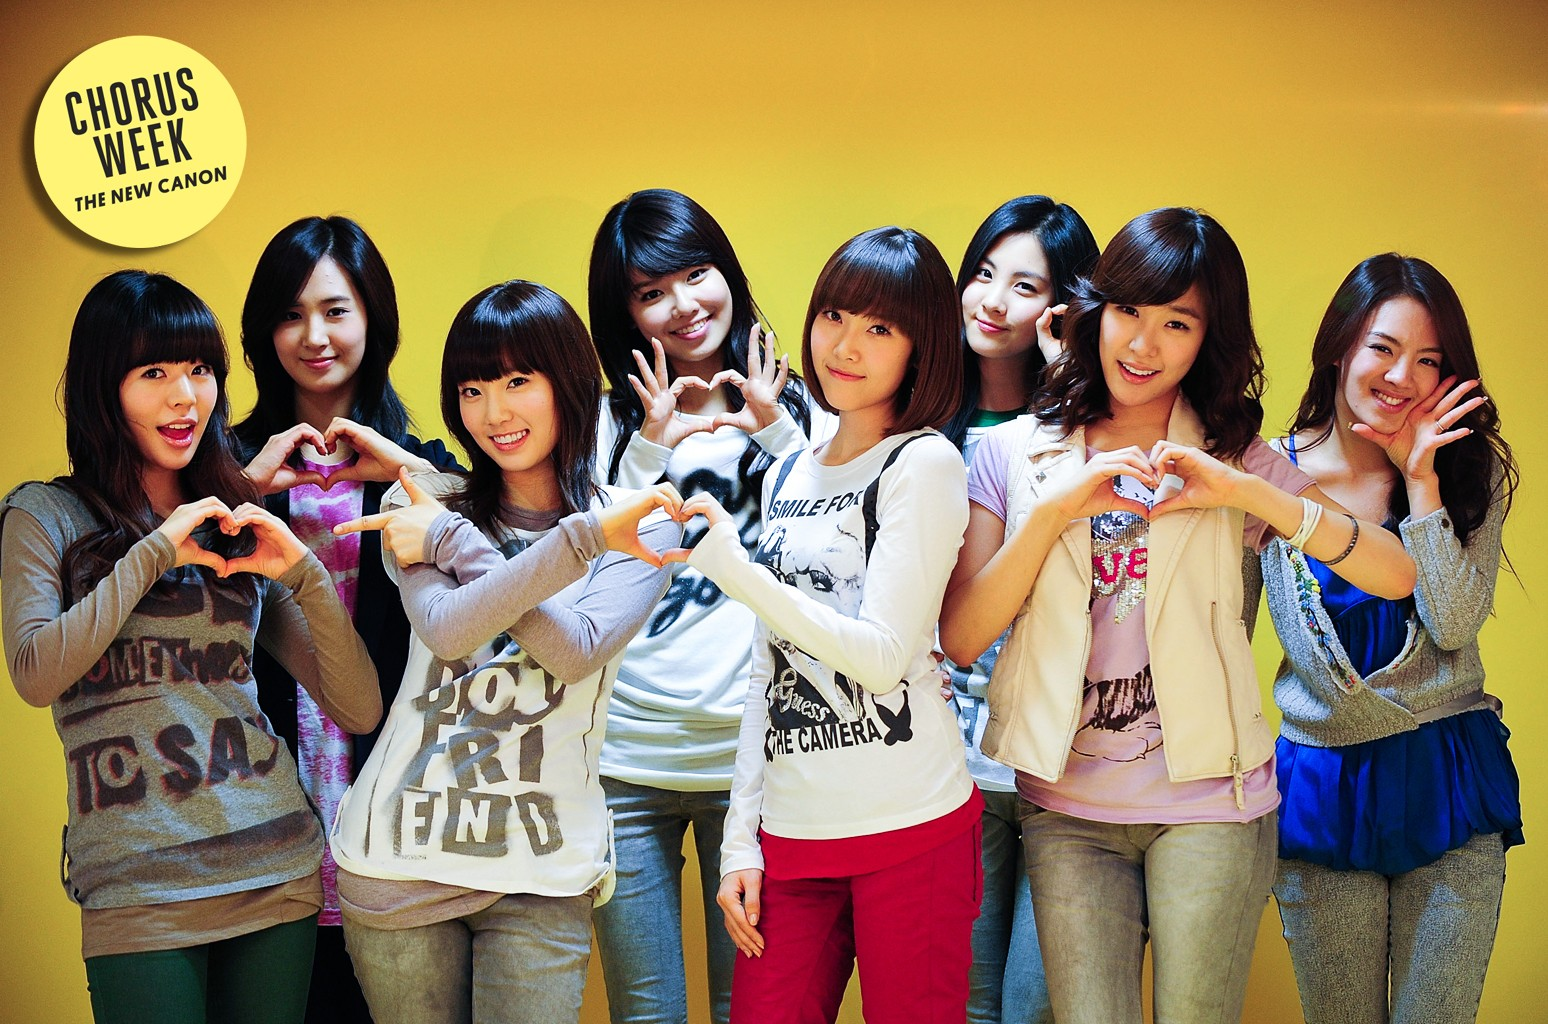 Girls' Generation photographed on Jan. 6, 2009 in Seoul, South Korea.